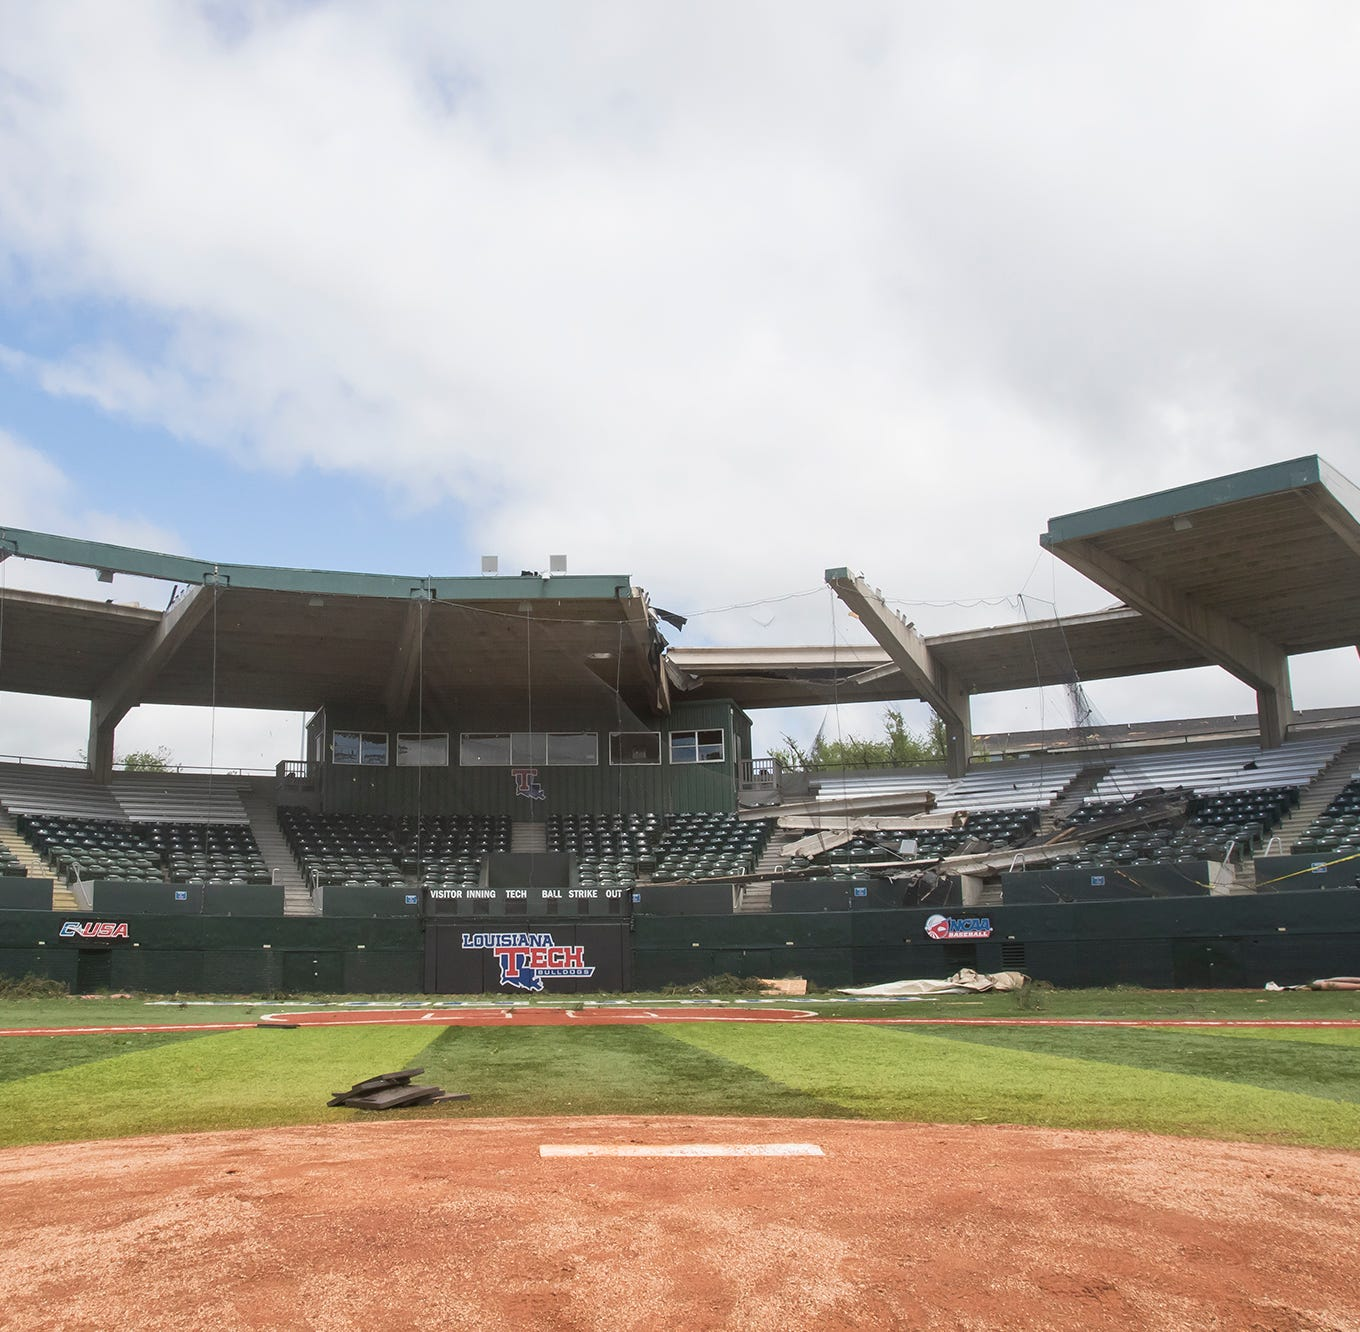 Where should LA Tech rebuild baseball stadium?